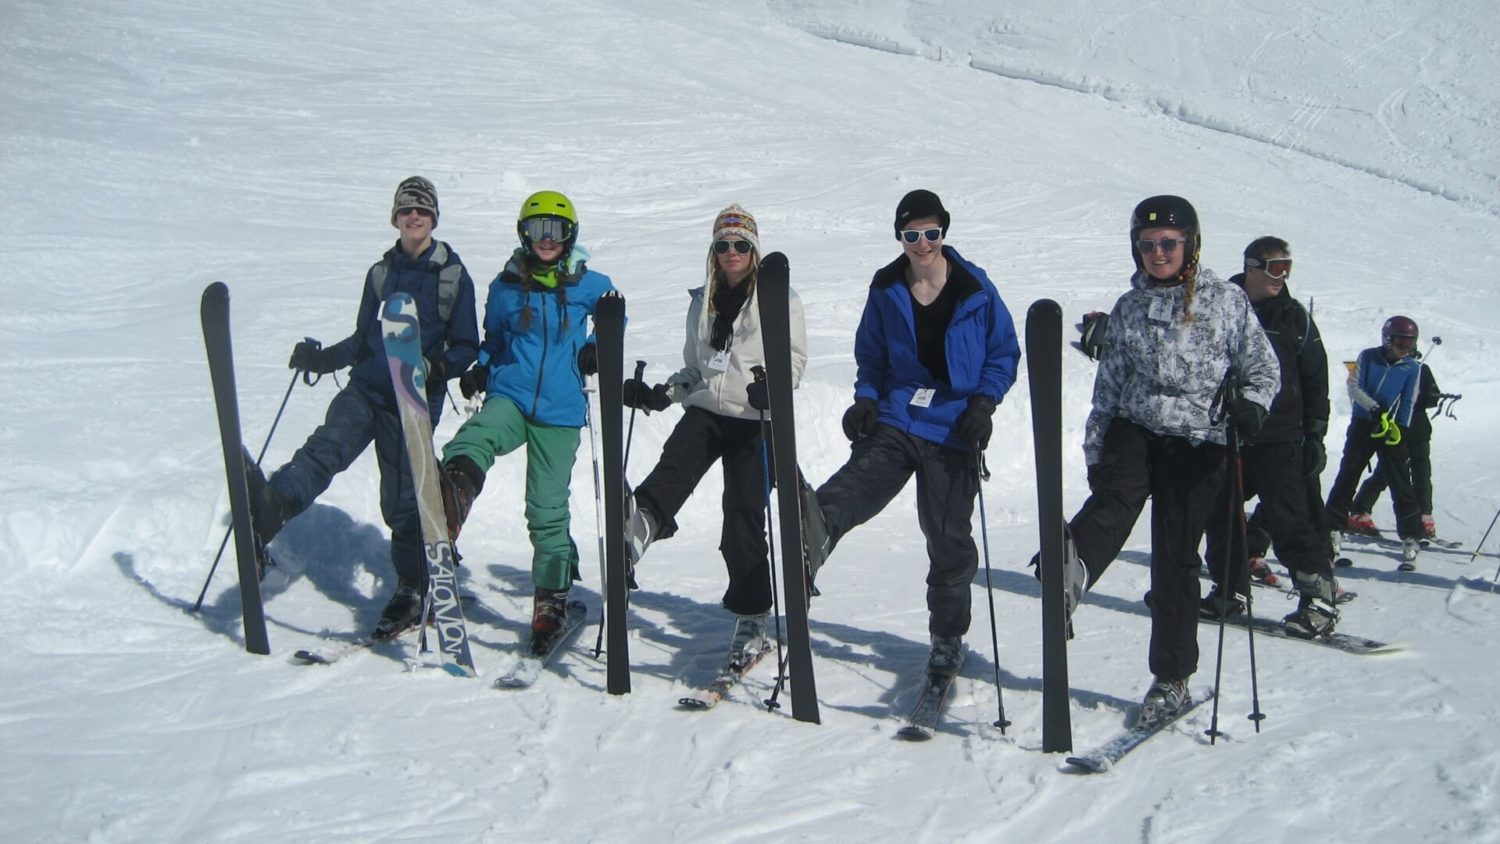 germany friends skiing together